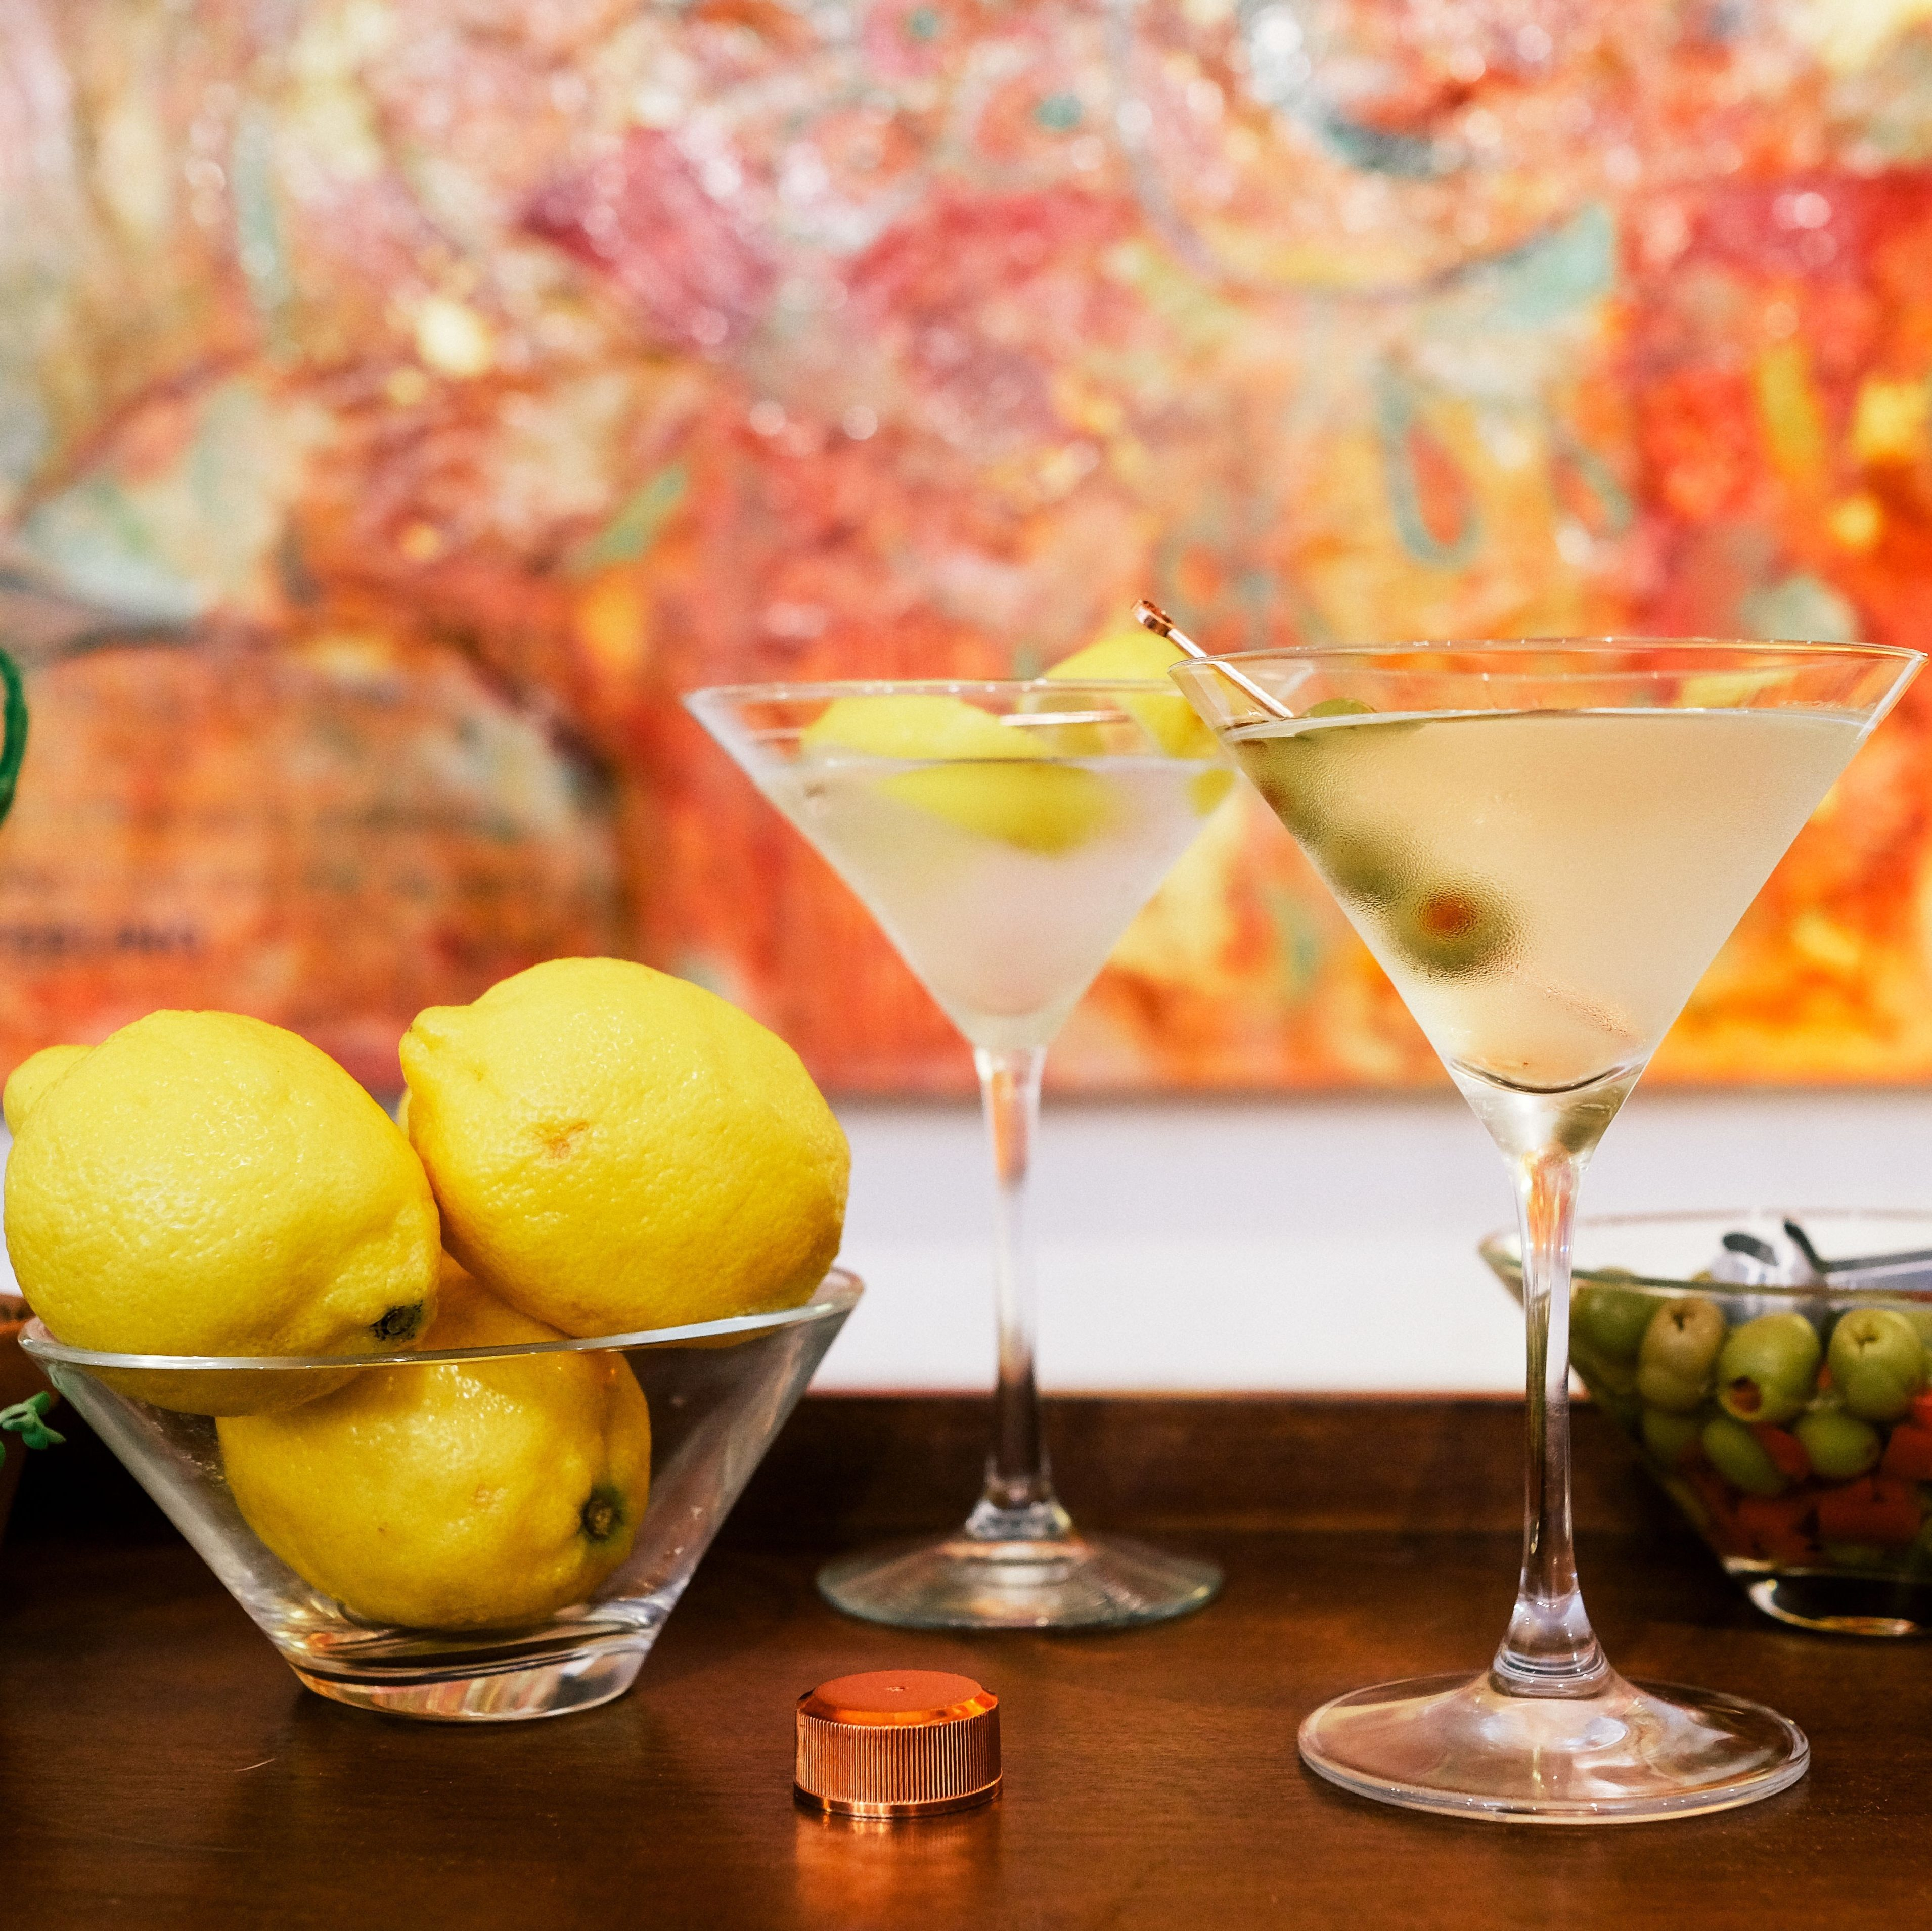 Tito's Vodka Martinis with lemons and olives